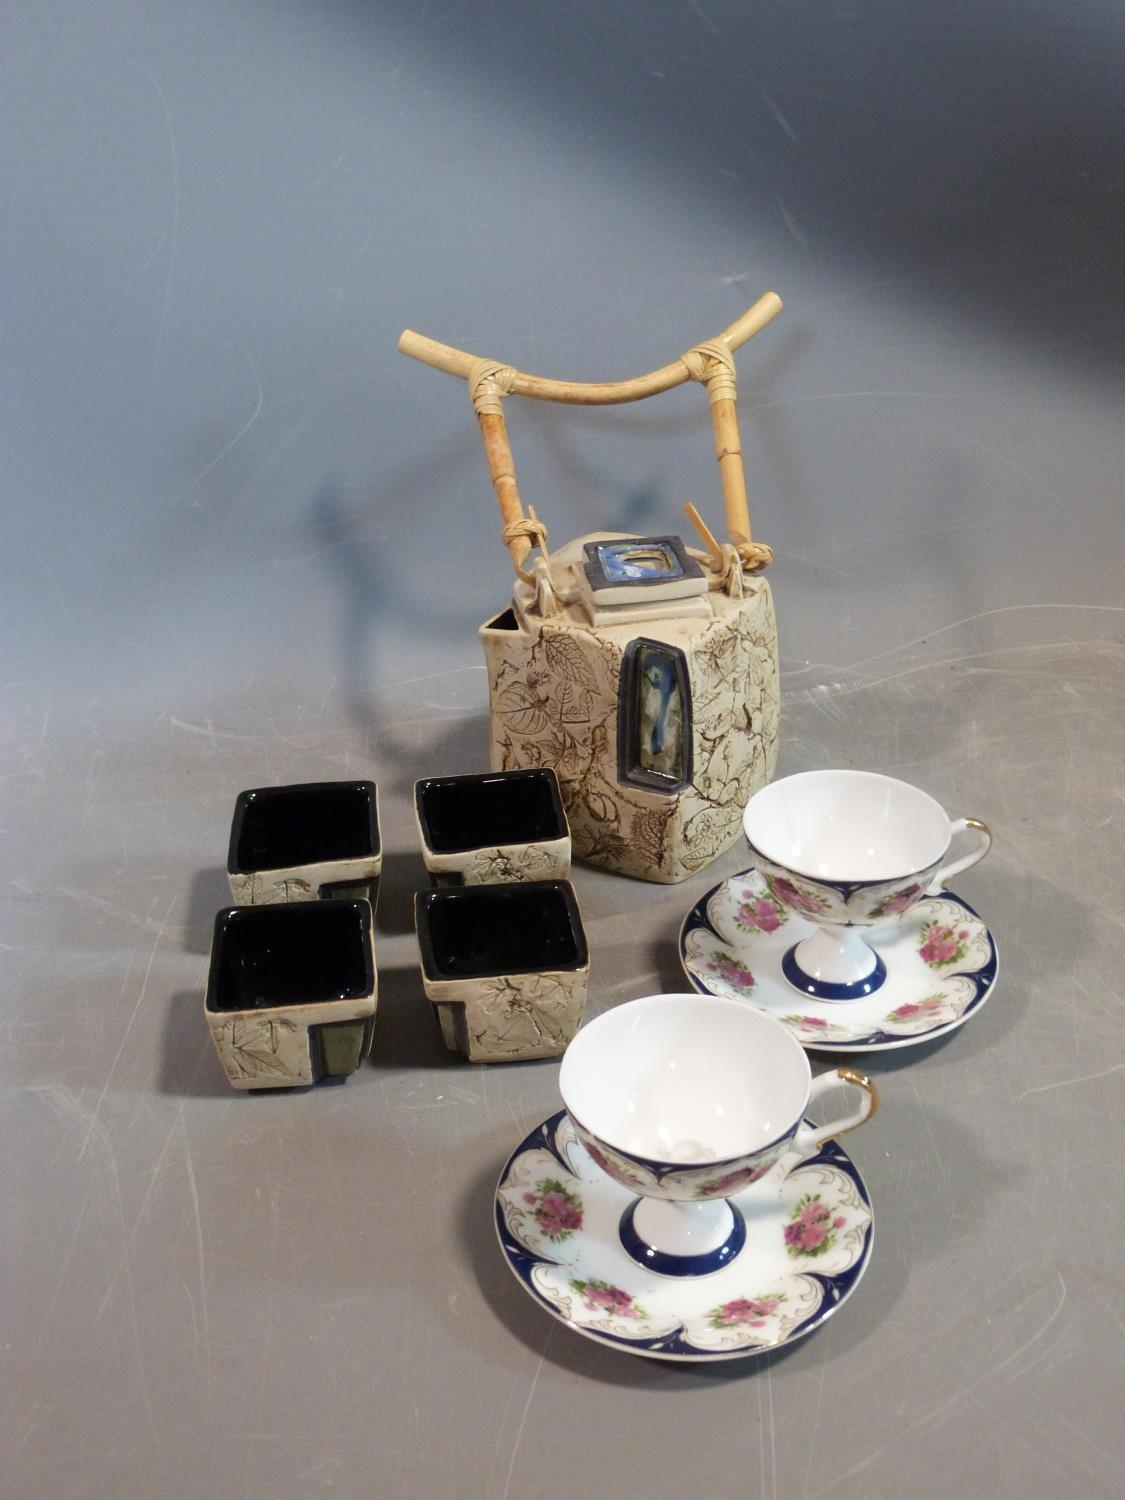 A ceramic Malaysian tea set and a pair of porcelain tea cups and saucers. The tea cups have a